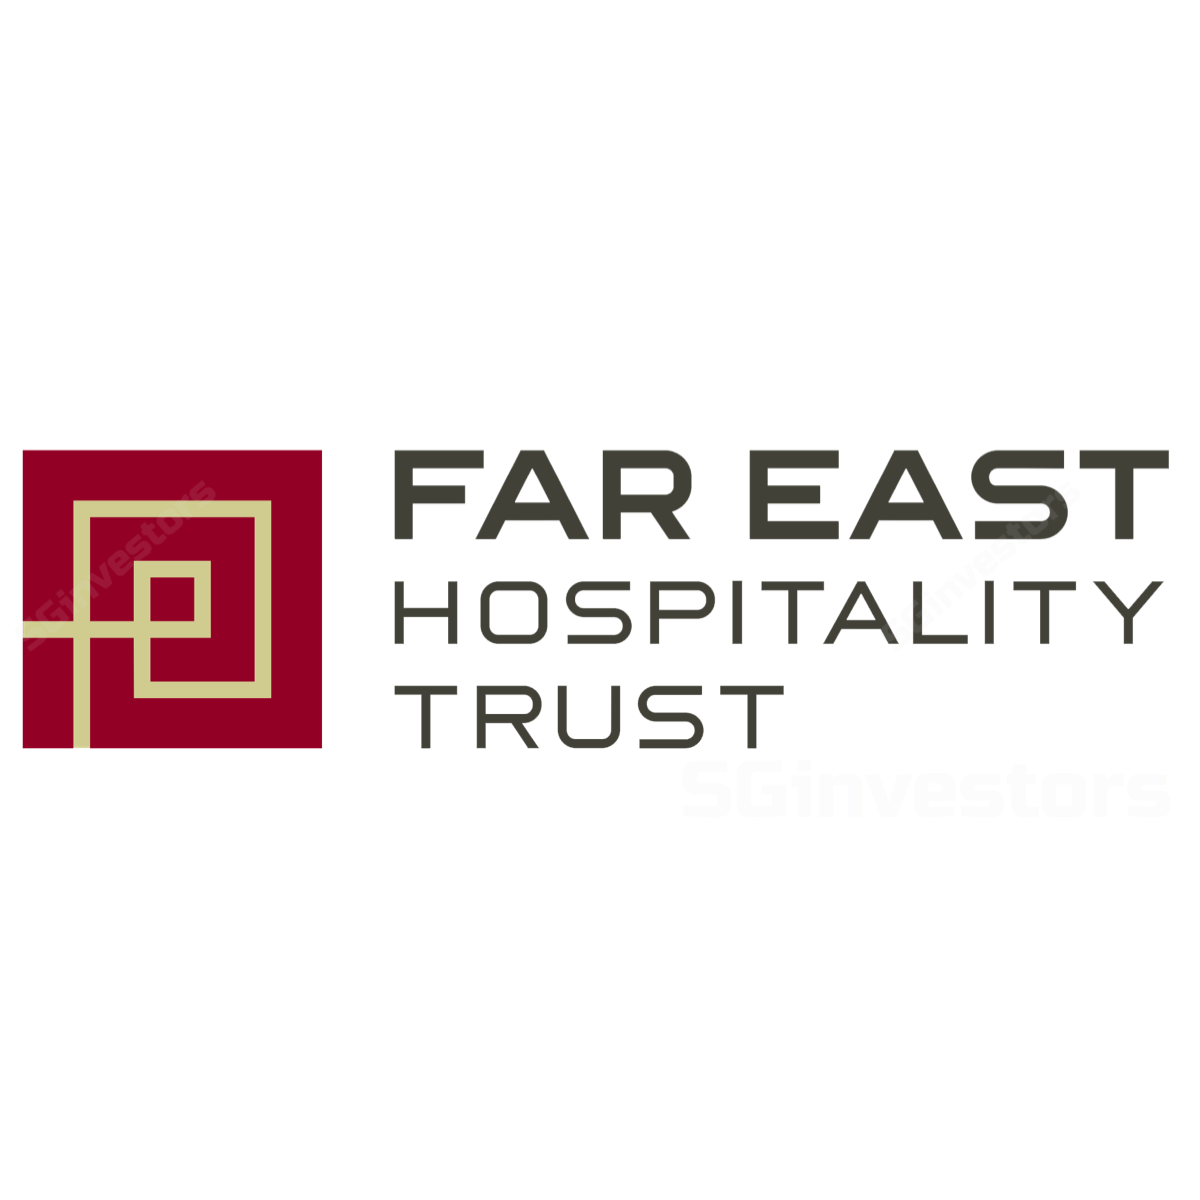 Far East Hospitality Trust - OCBC Investment 2018-02-19: Bow Wow Wow